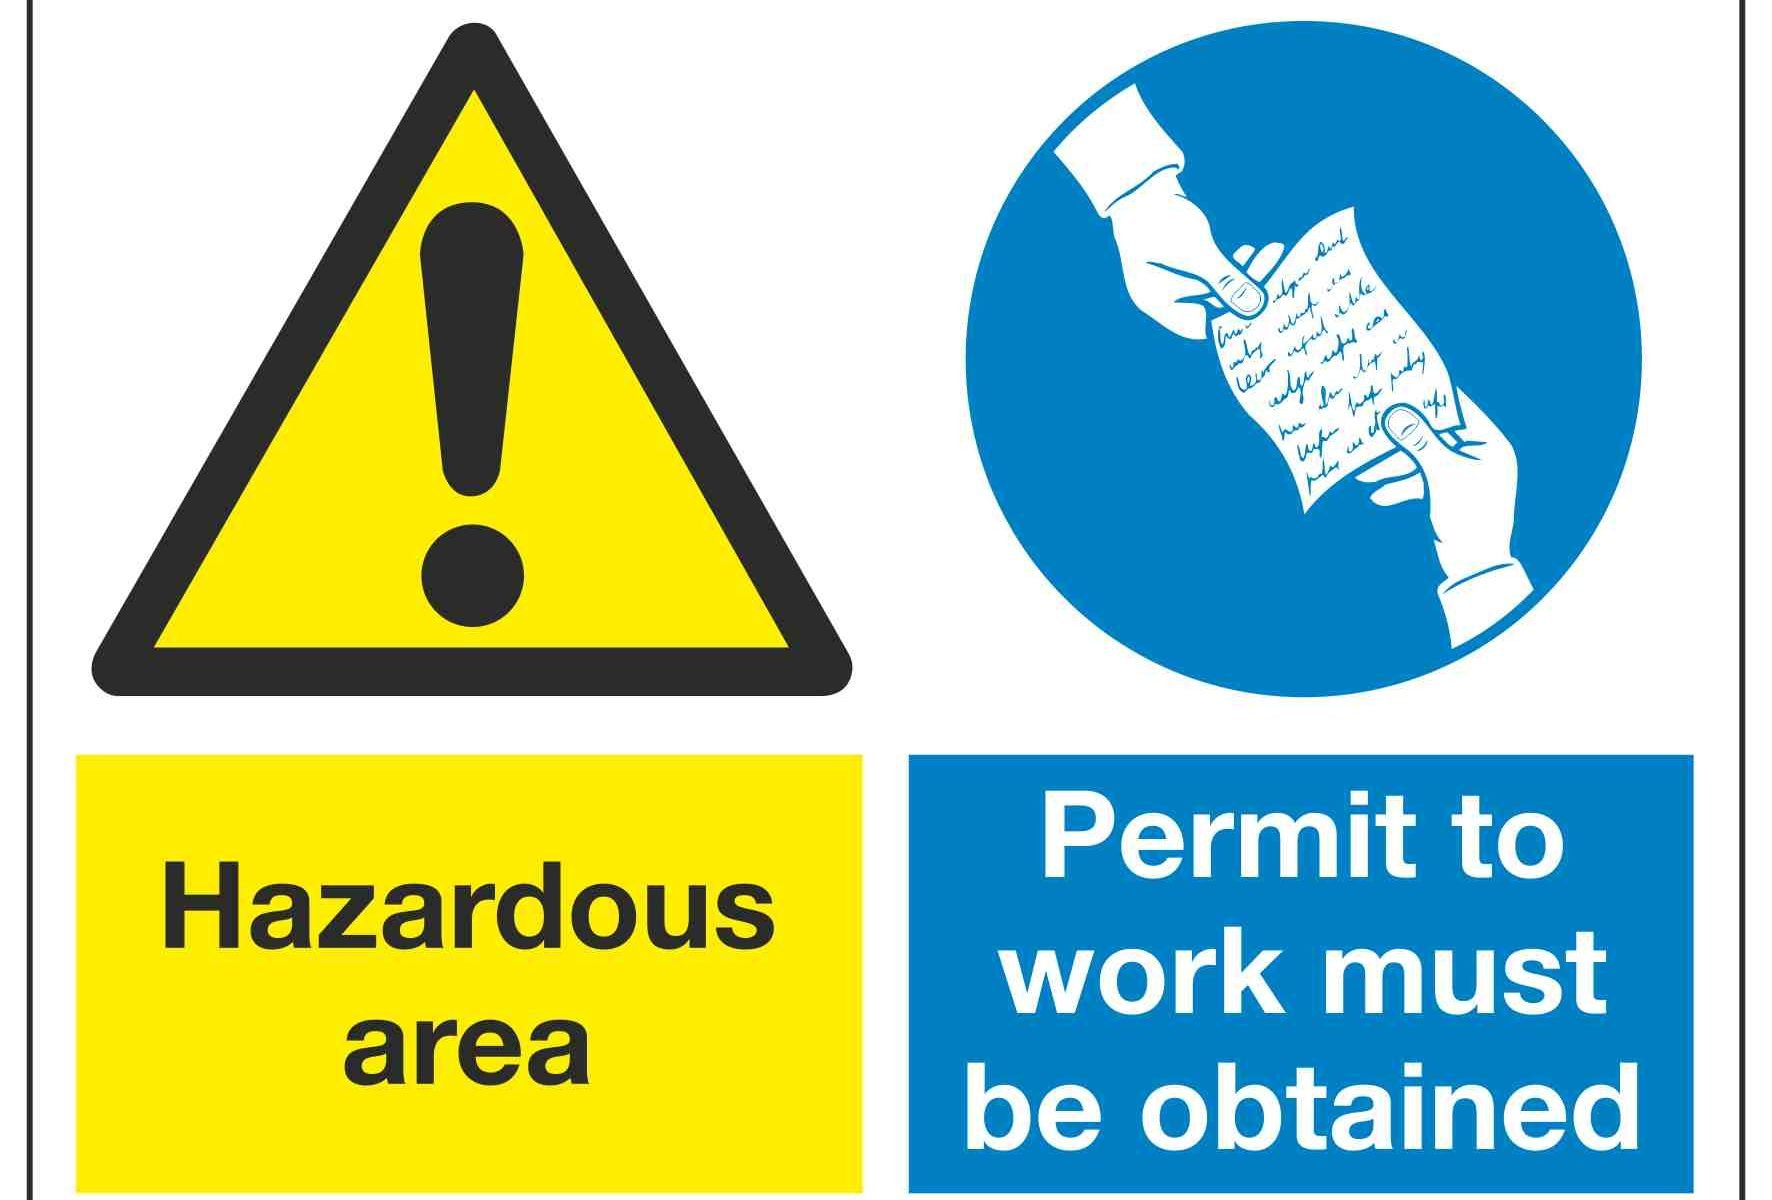 Hazardous area Permit to work must be obtained